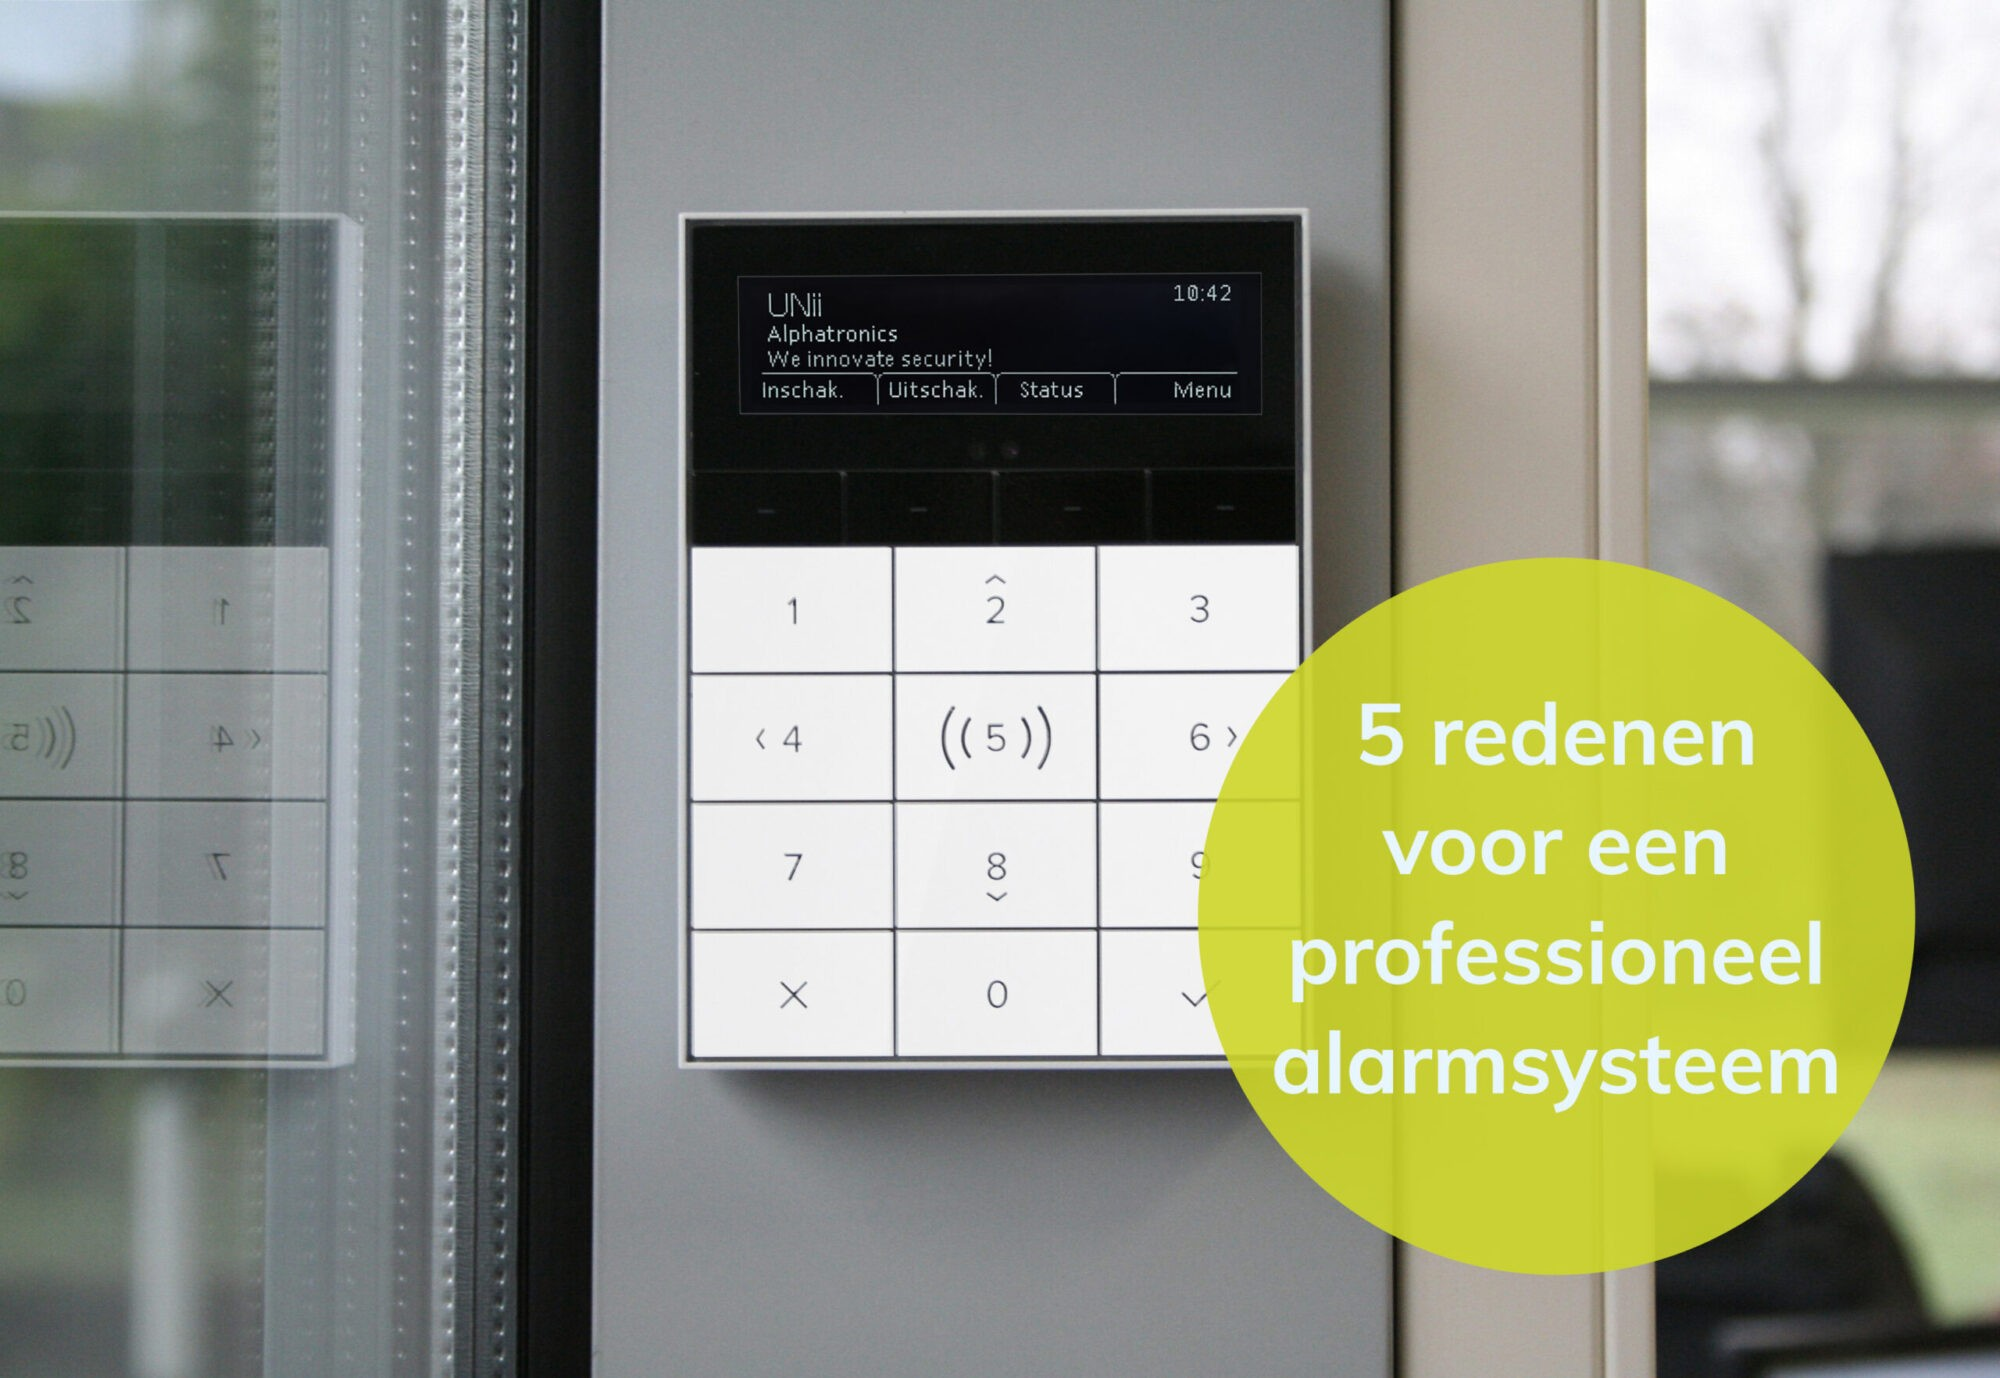 5 reasons to take a professional alarm system